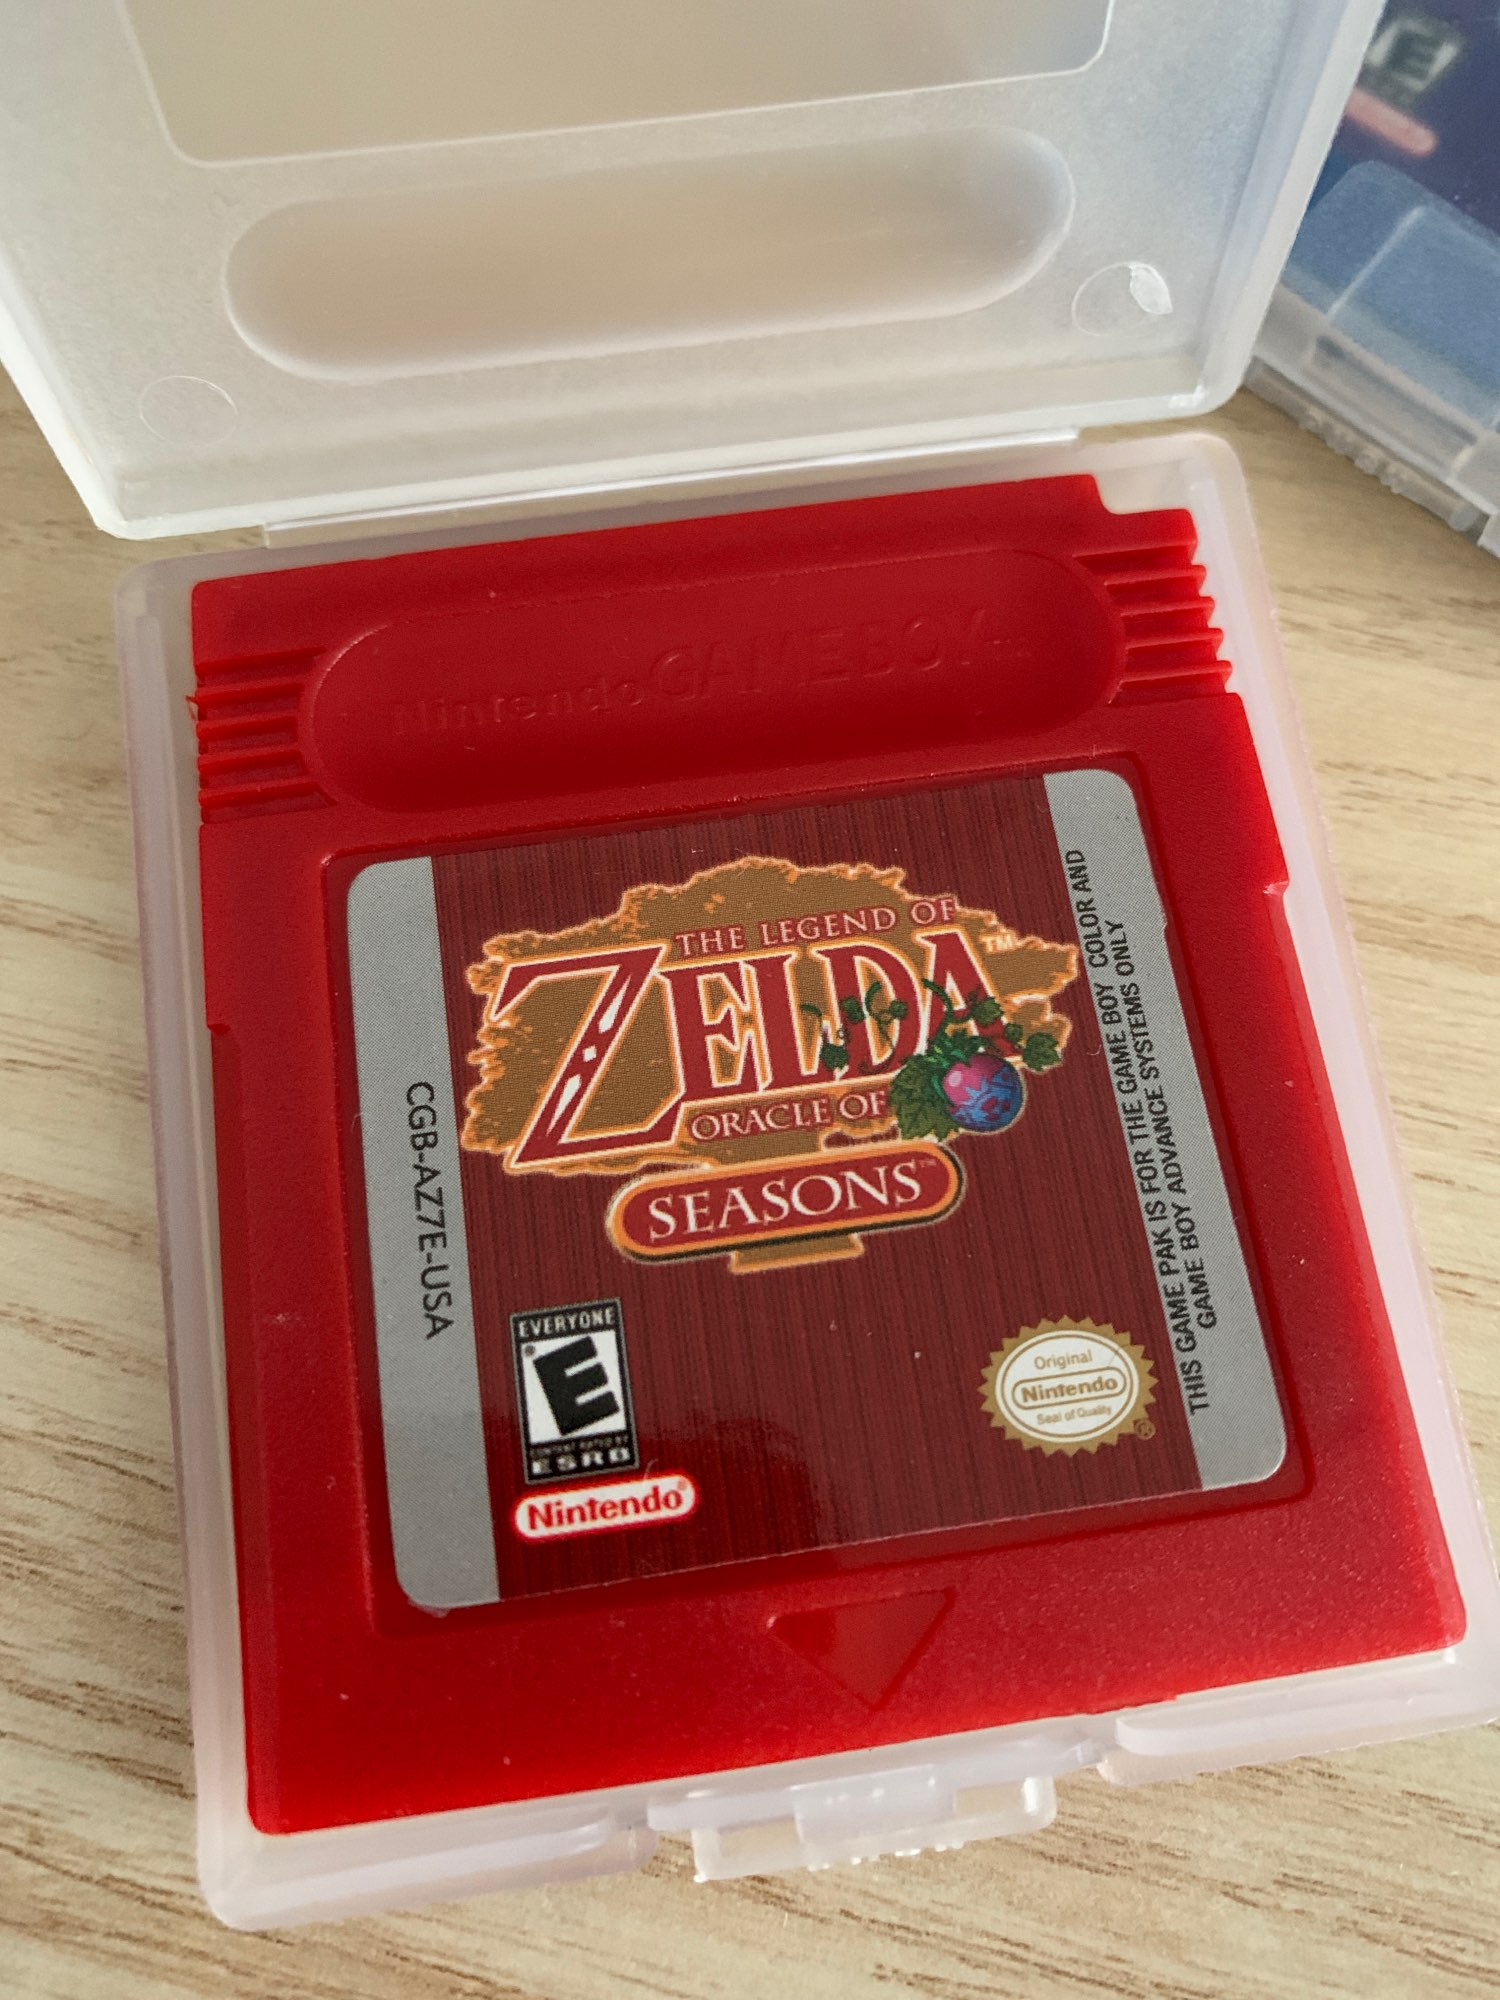 For Nintendo GBC Video Game Cartridge Console Card The Legend of Zeld Oracle Of Seasons English Language Version photo review